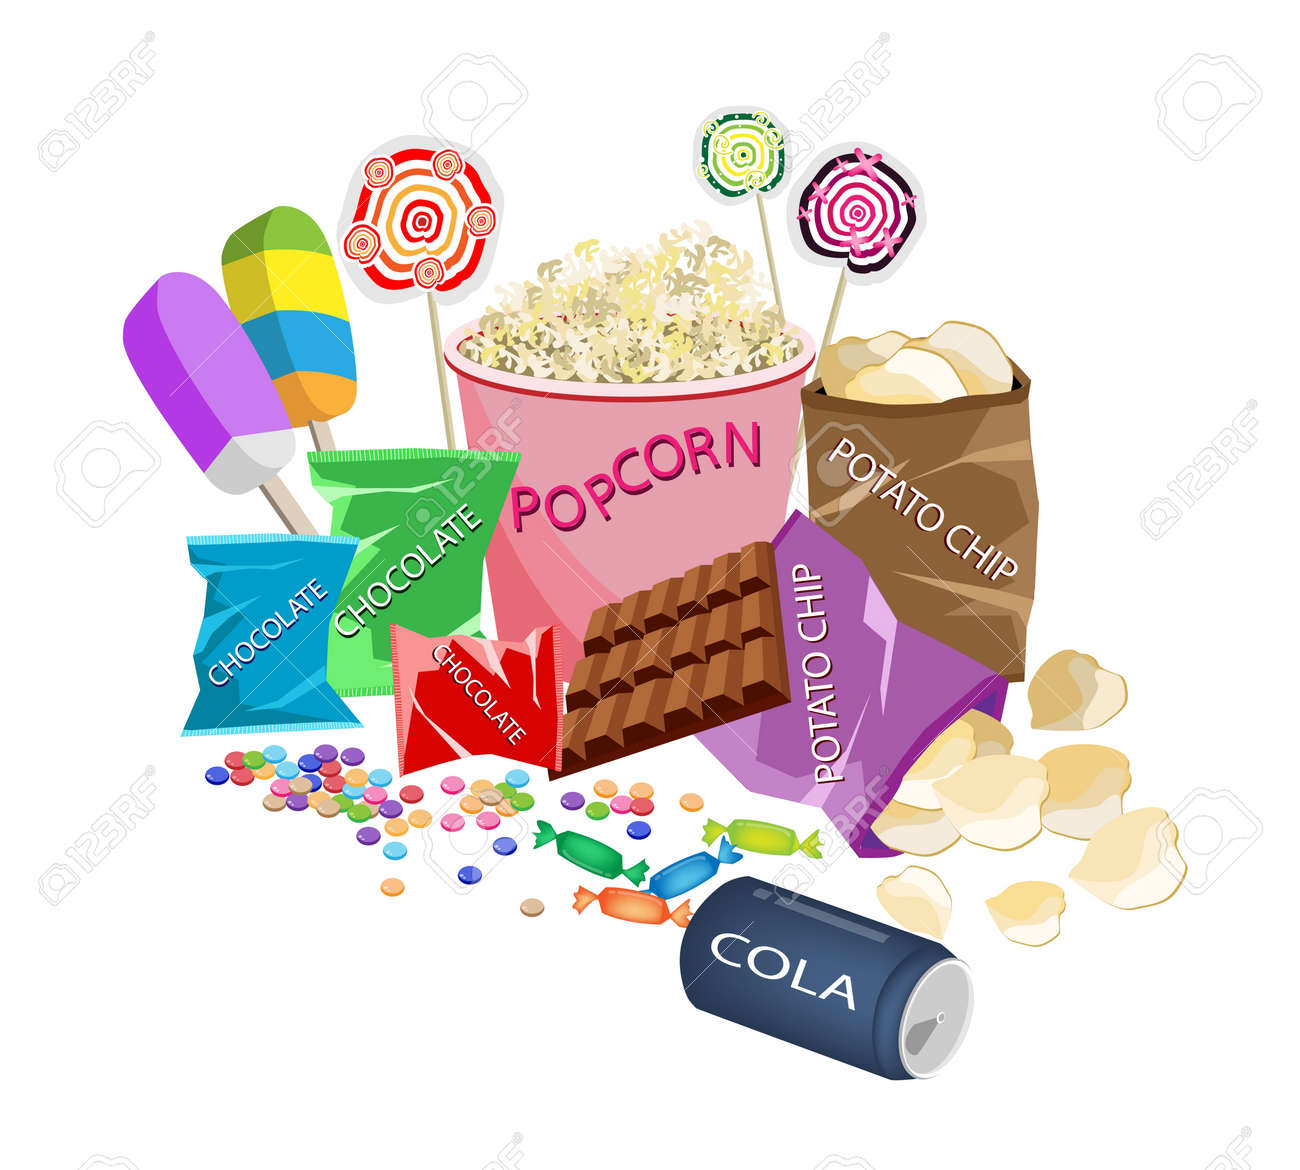 Movie Food An Illustration Of Popcorn Popsicles Lollipops Royalty Free Cliparts Vectors And Stock Illustration Image 18432971